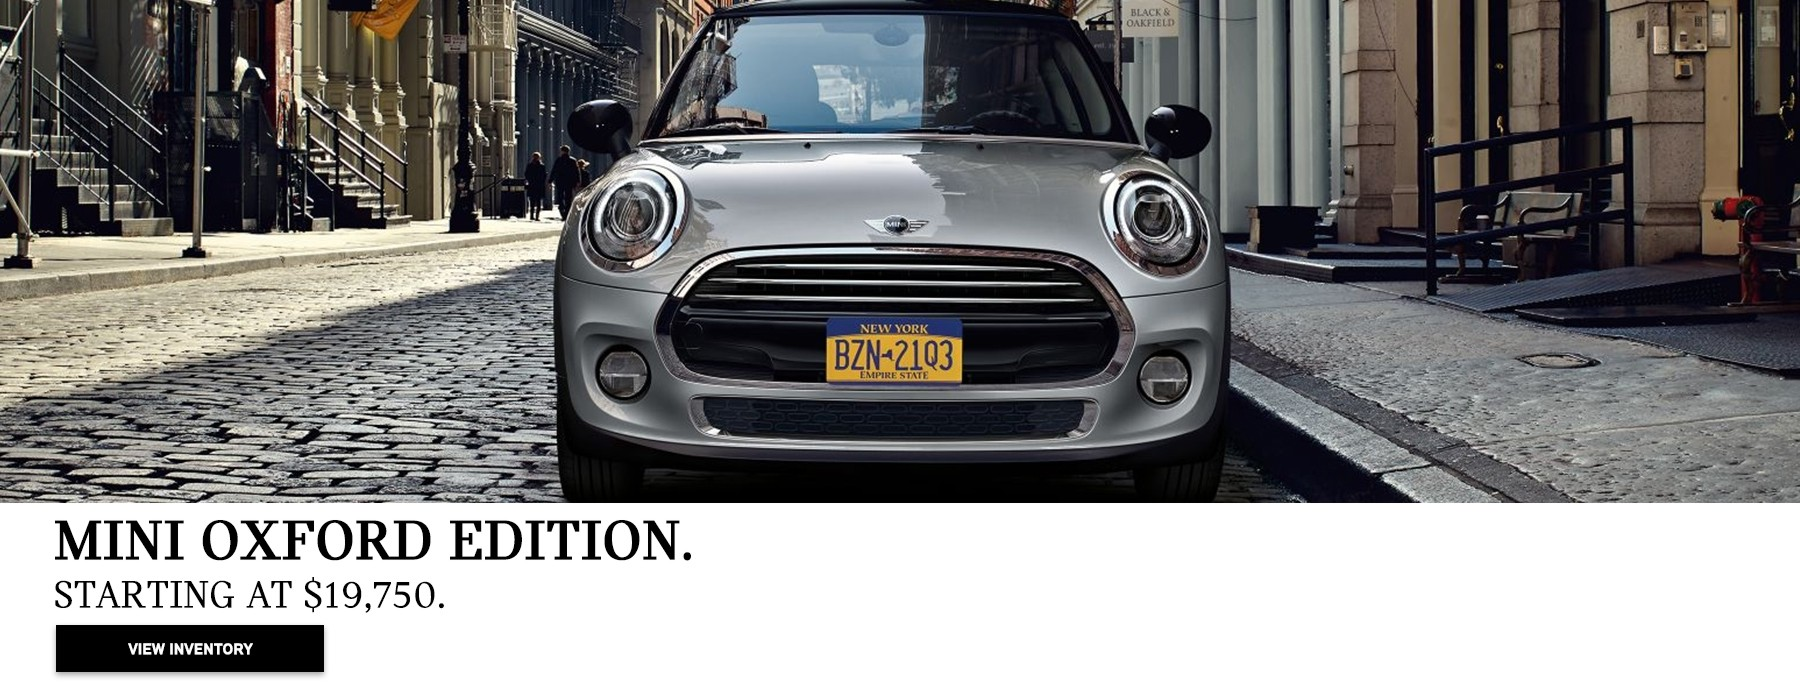 MiniOxfordEdition